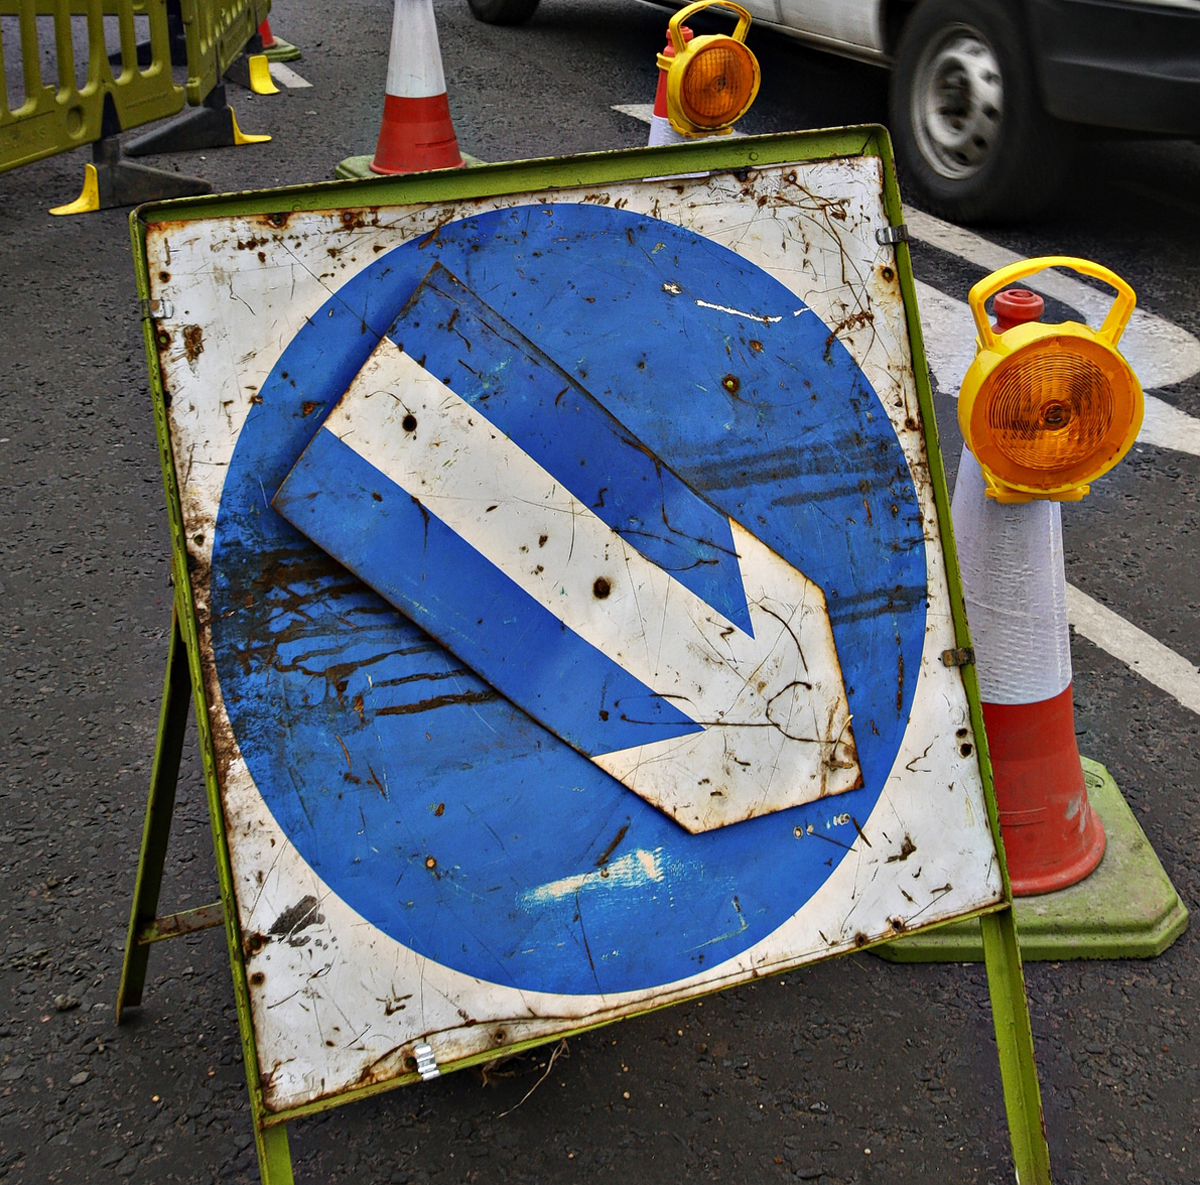 Delays in Abbots Langley due to resurfacing n